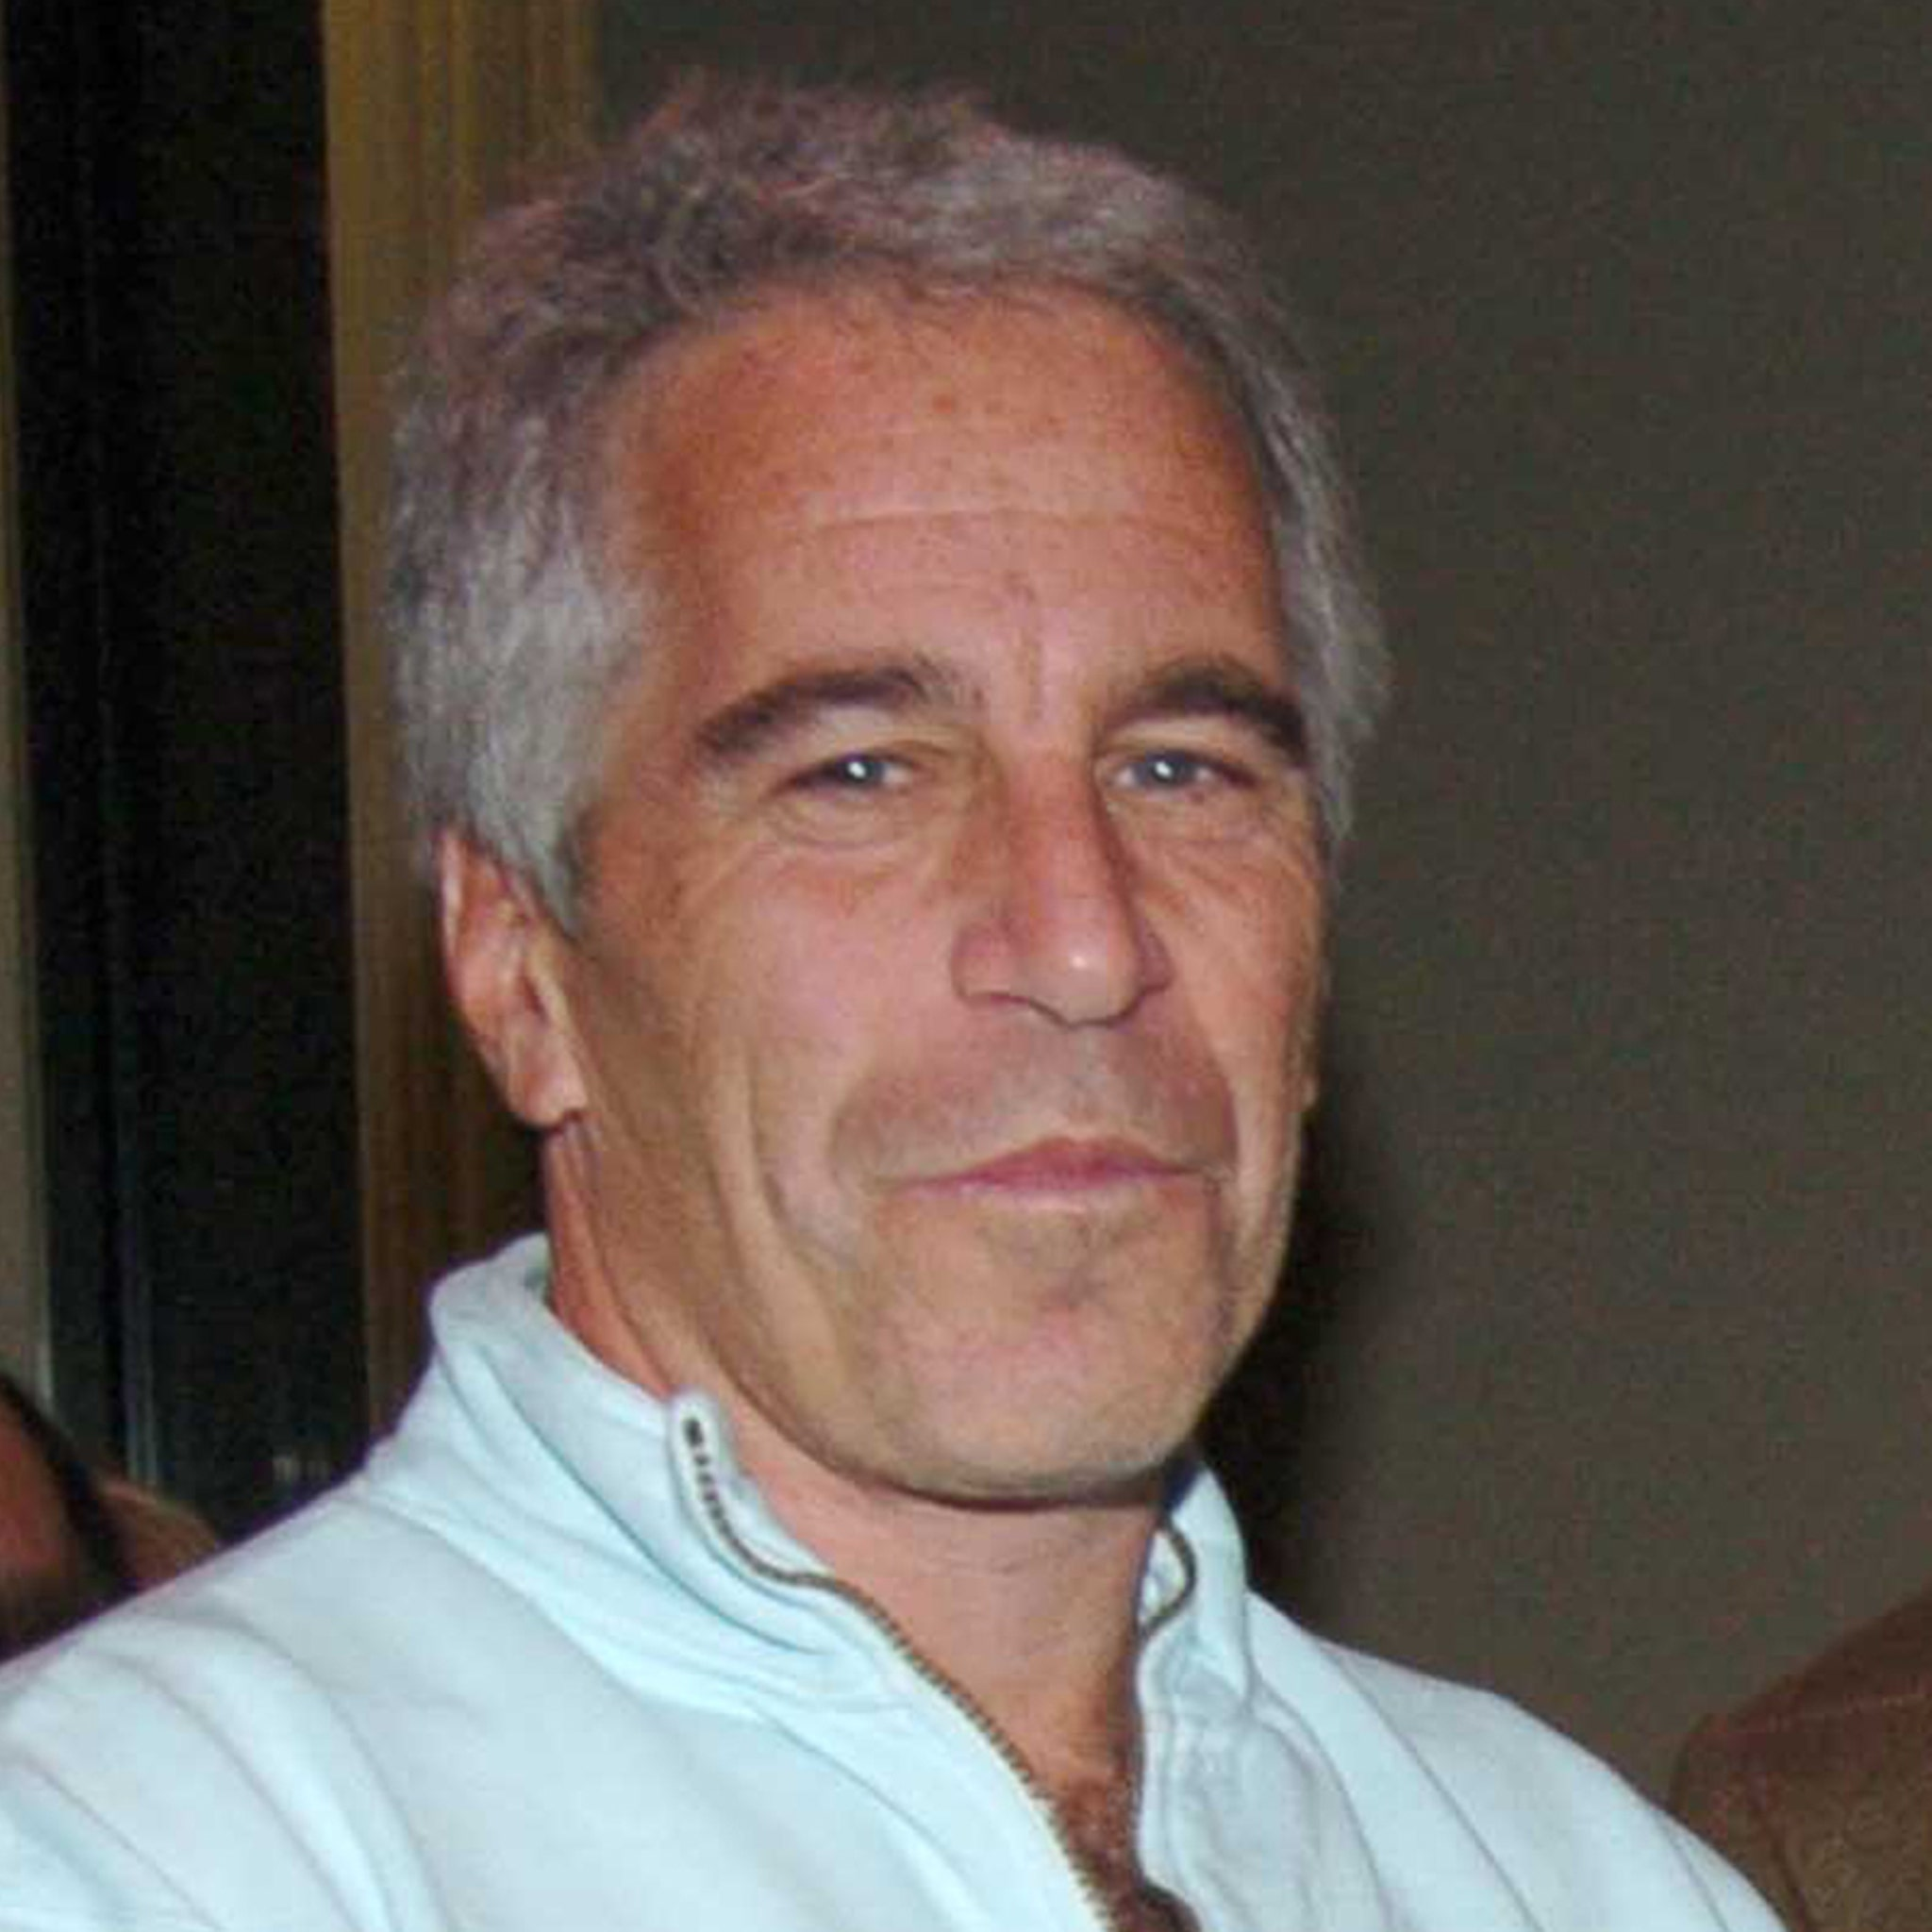 Jeffrey Epstein's Death Likely Not Captured by Cameras and Guards Didn't Check on Him